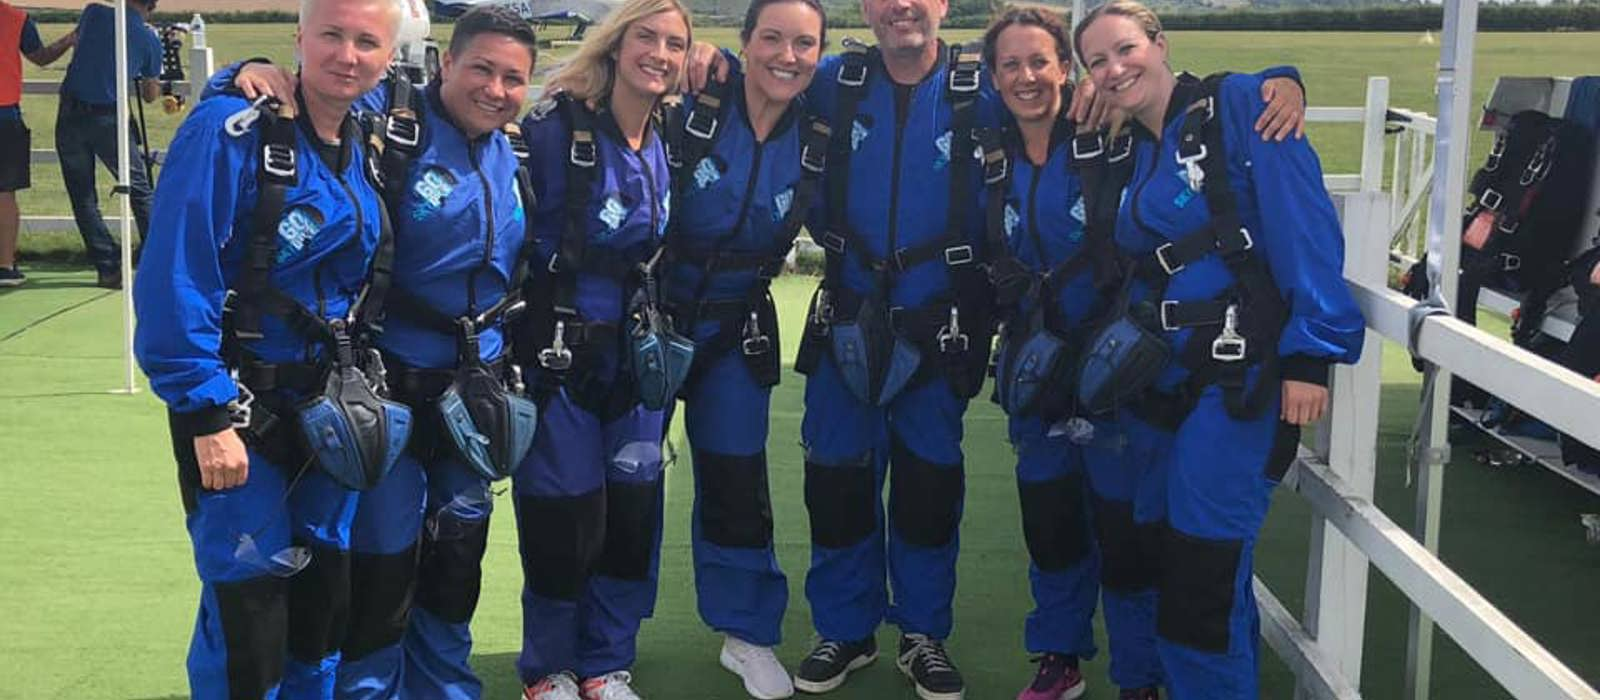 Sky Diving Team raises £4500 for the charity